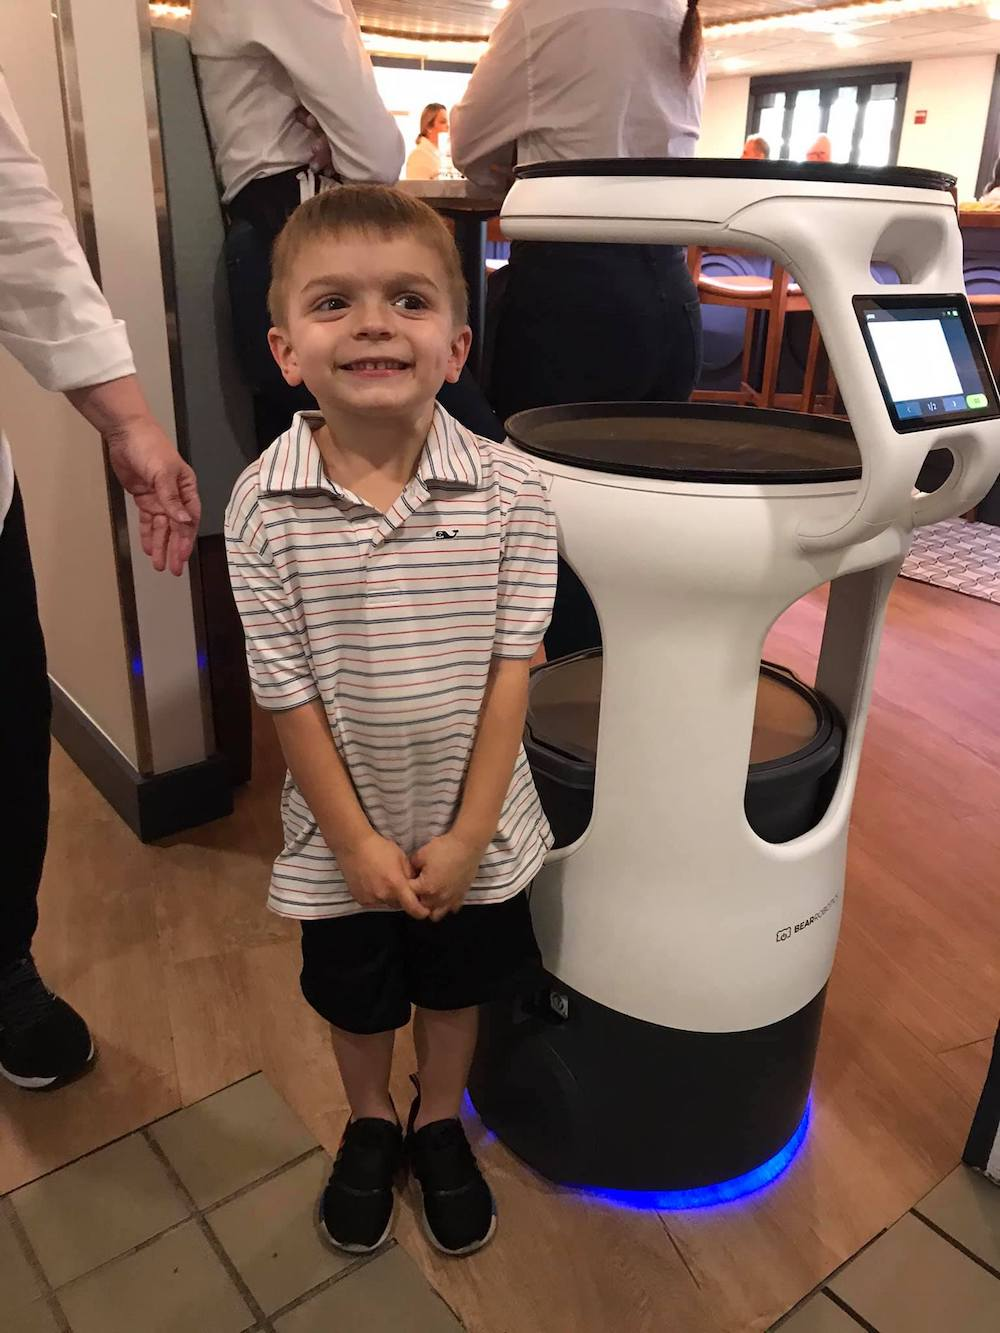 this photo shows a happy little boy standing next to Servie the pizza robot at Angelo's Palace Pizza